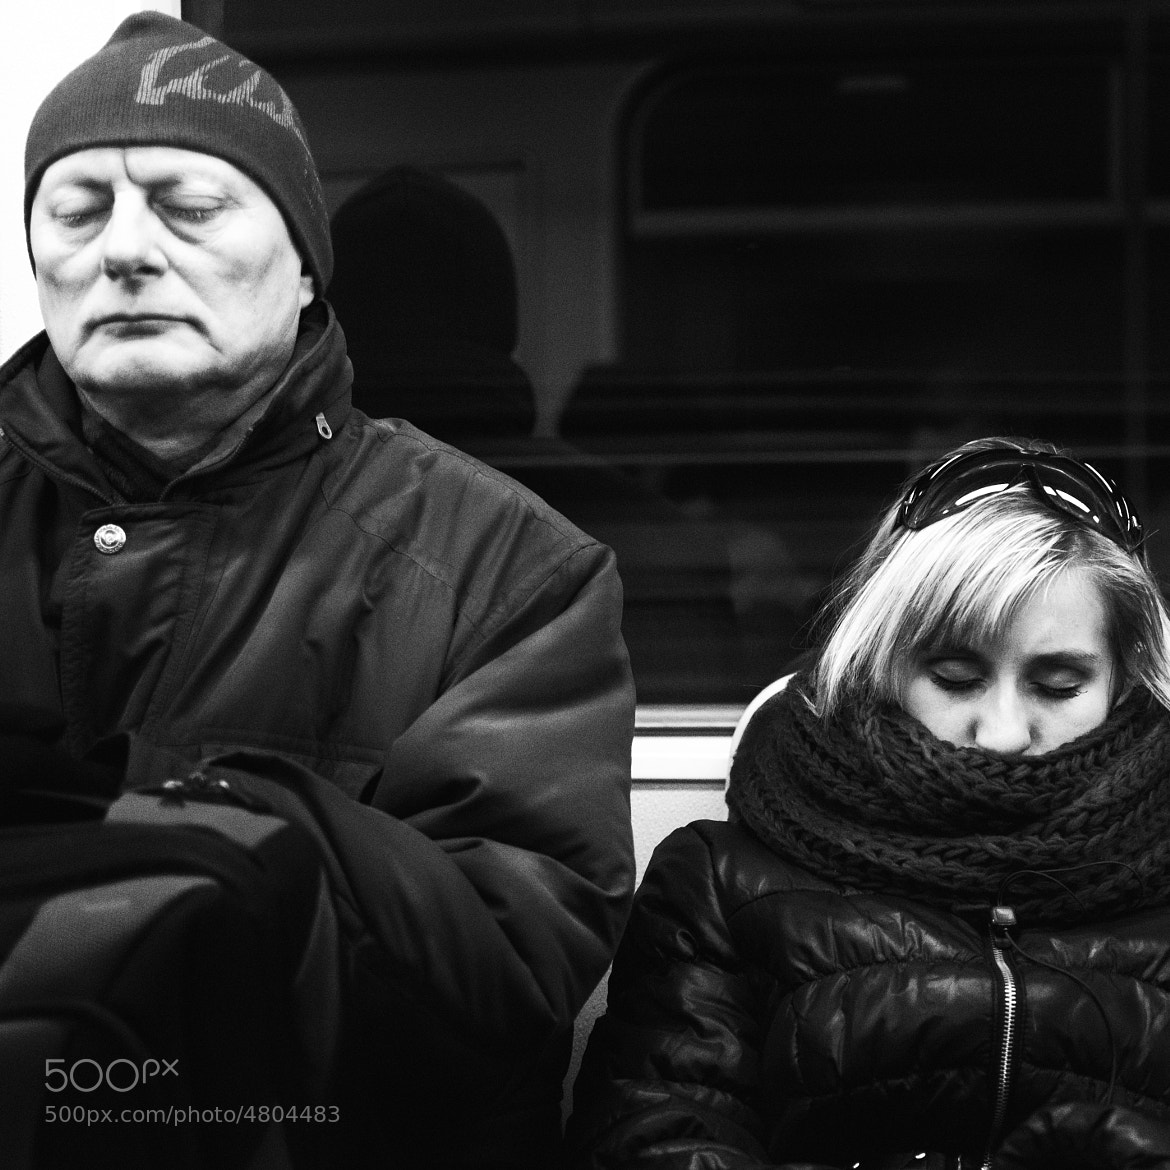 Photograph sleepers in subway by Ondrej Cervinka on 500px